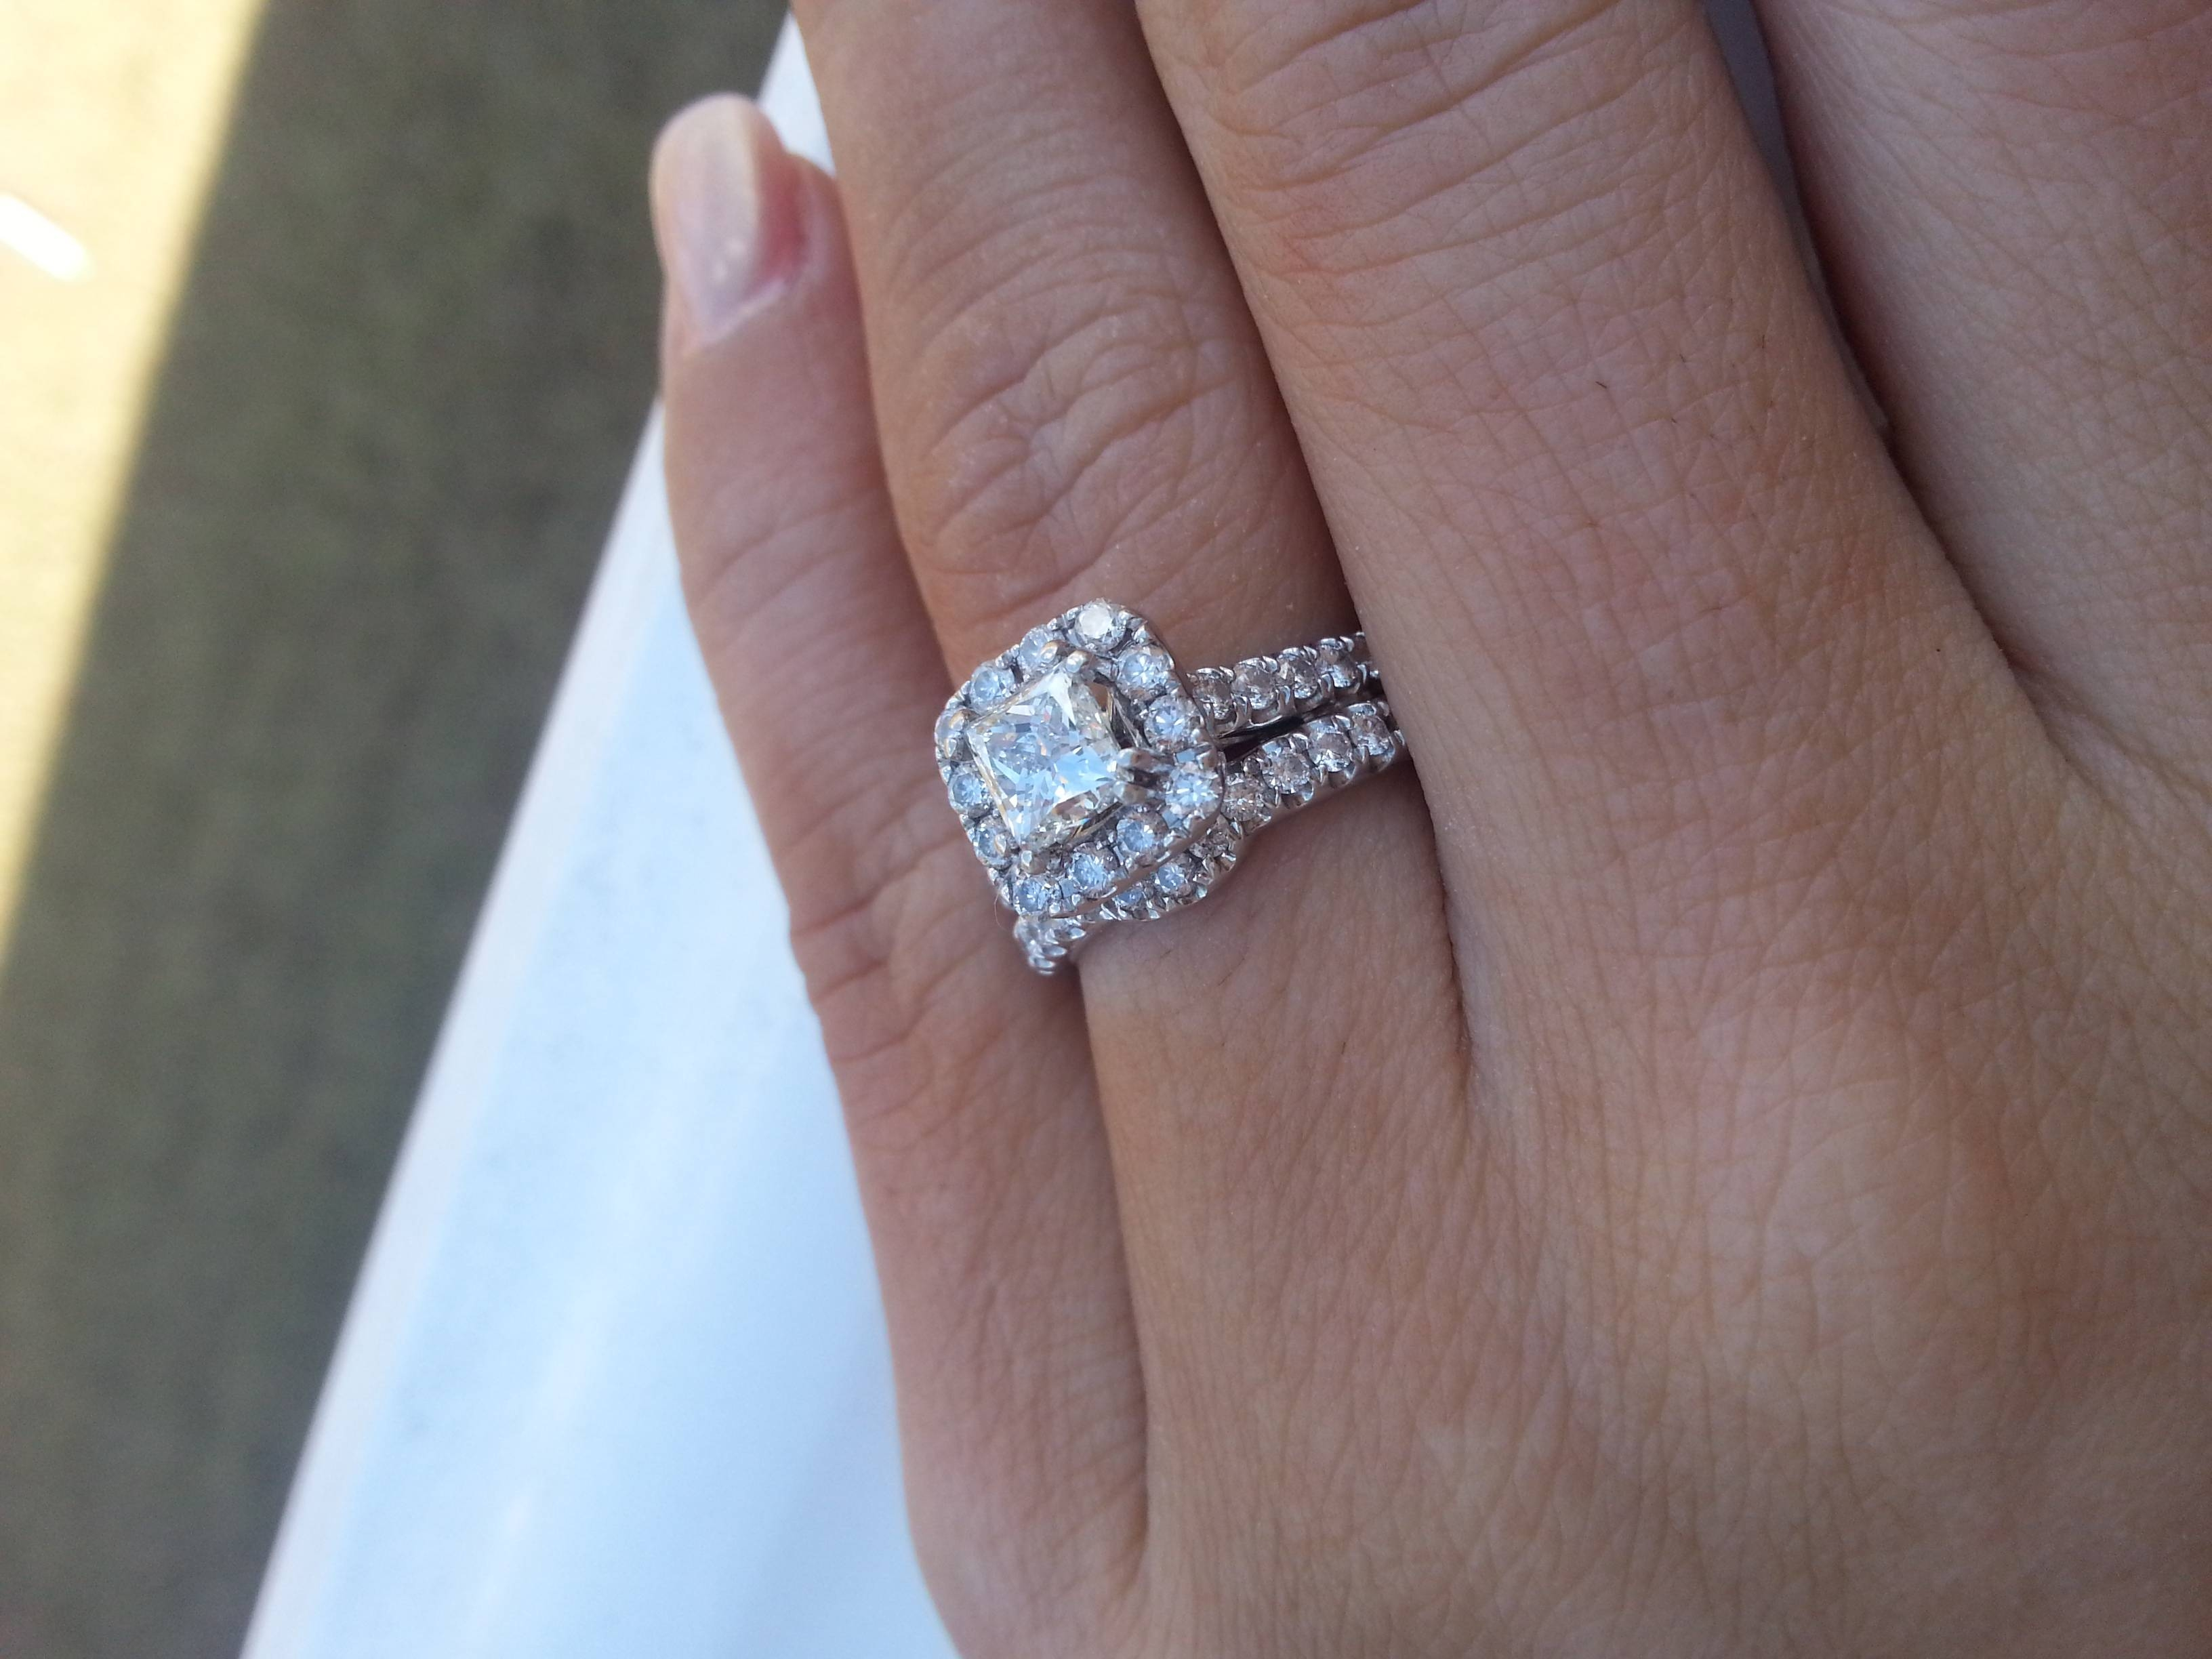 Okay To Mix Princess Cut E Ring With A Round Cut Diamond Wedding In Wedding Bands To Go With Princess Cut Engagement Rings (Gallery 3 of 15)